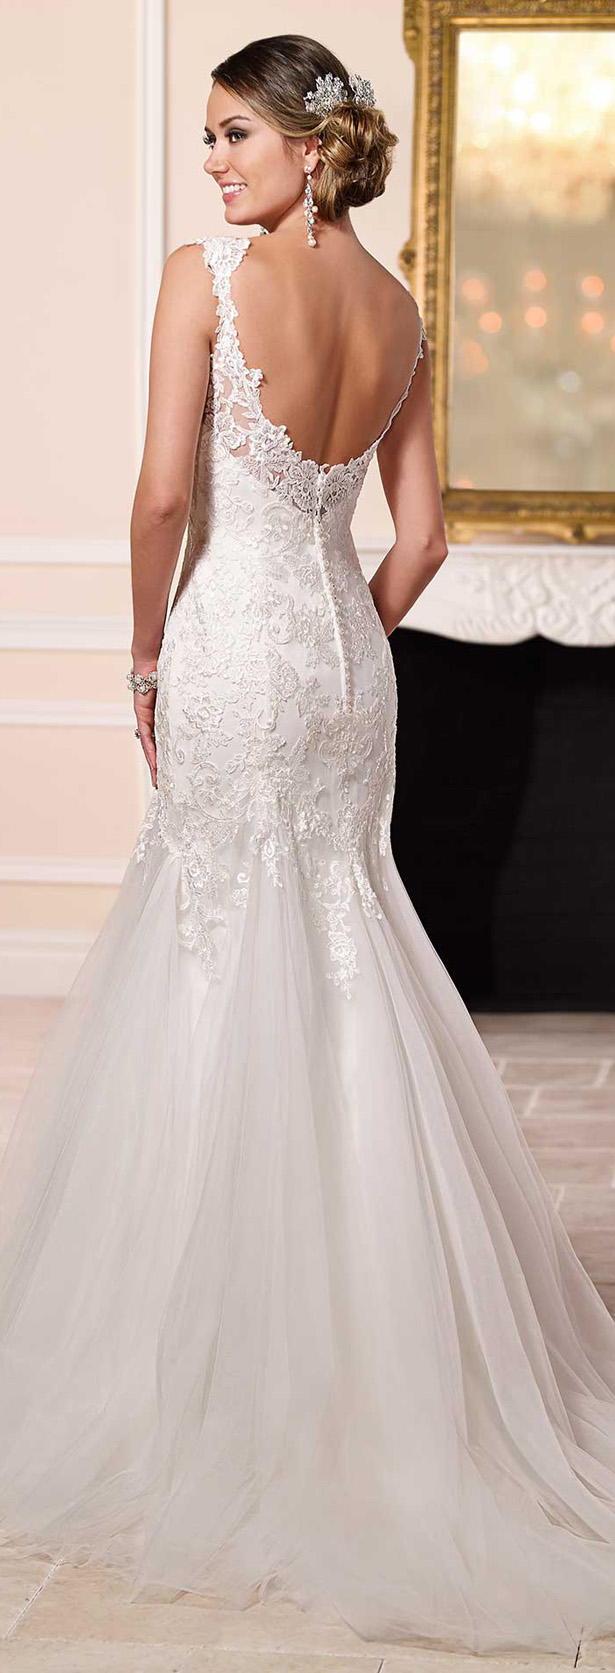 Wedding Dress by Stella York Spring 2016stella-york-spring-2016-wedding-dress-6106_alt2_zoom